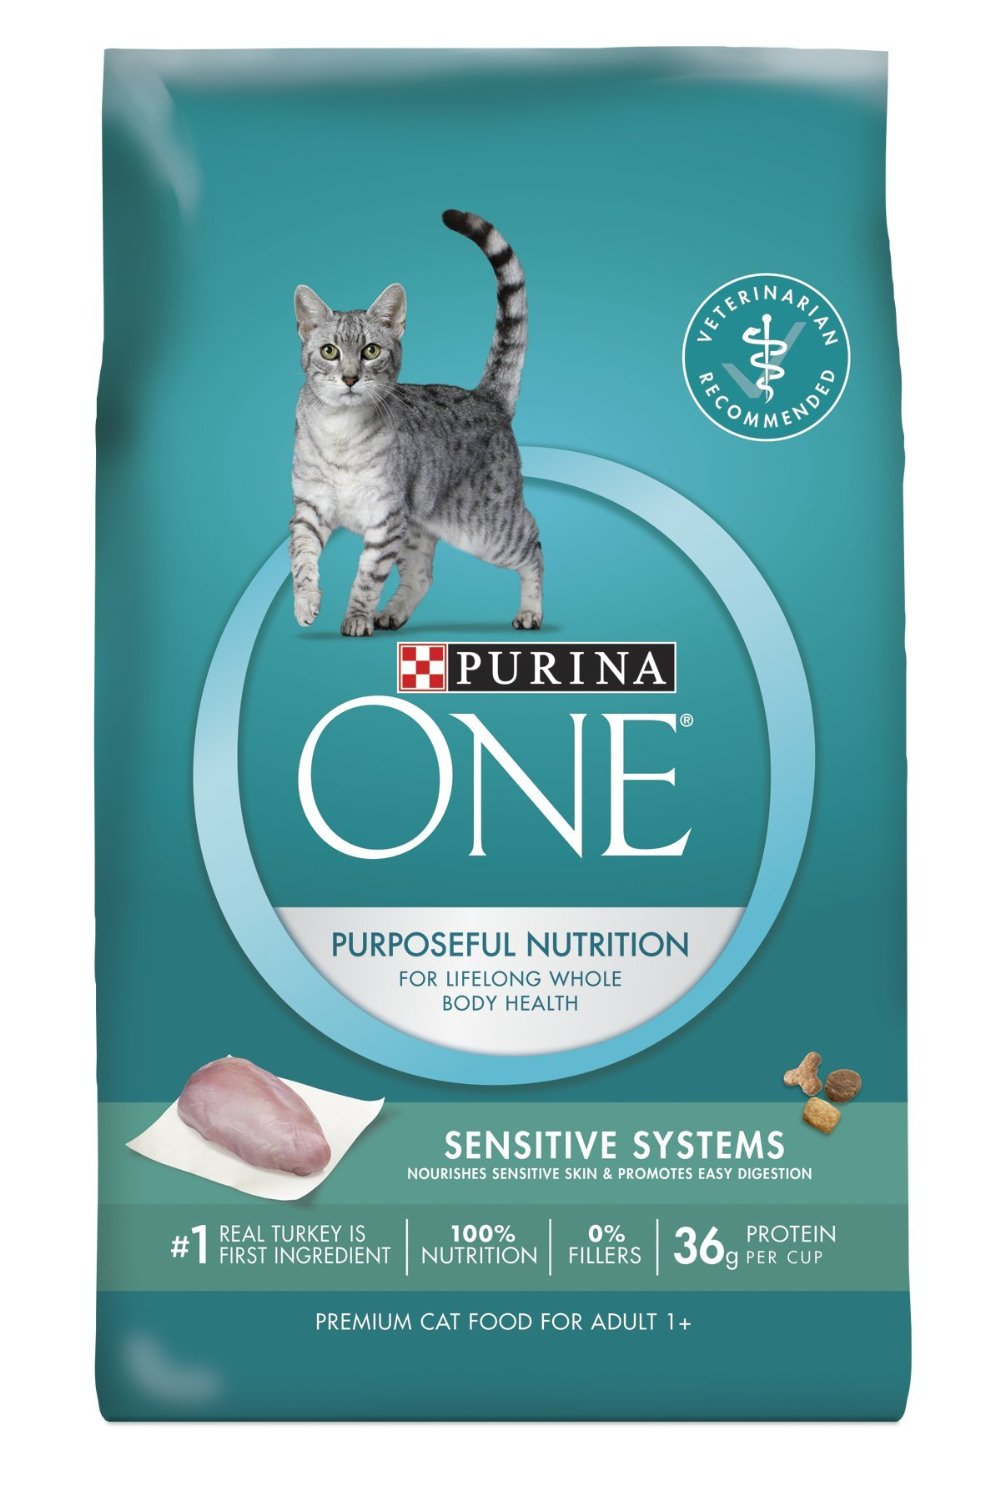 Purina ONE best cat food for sensitive stomach vomiting